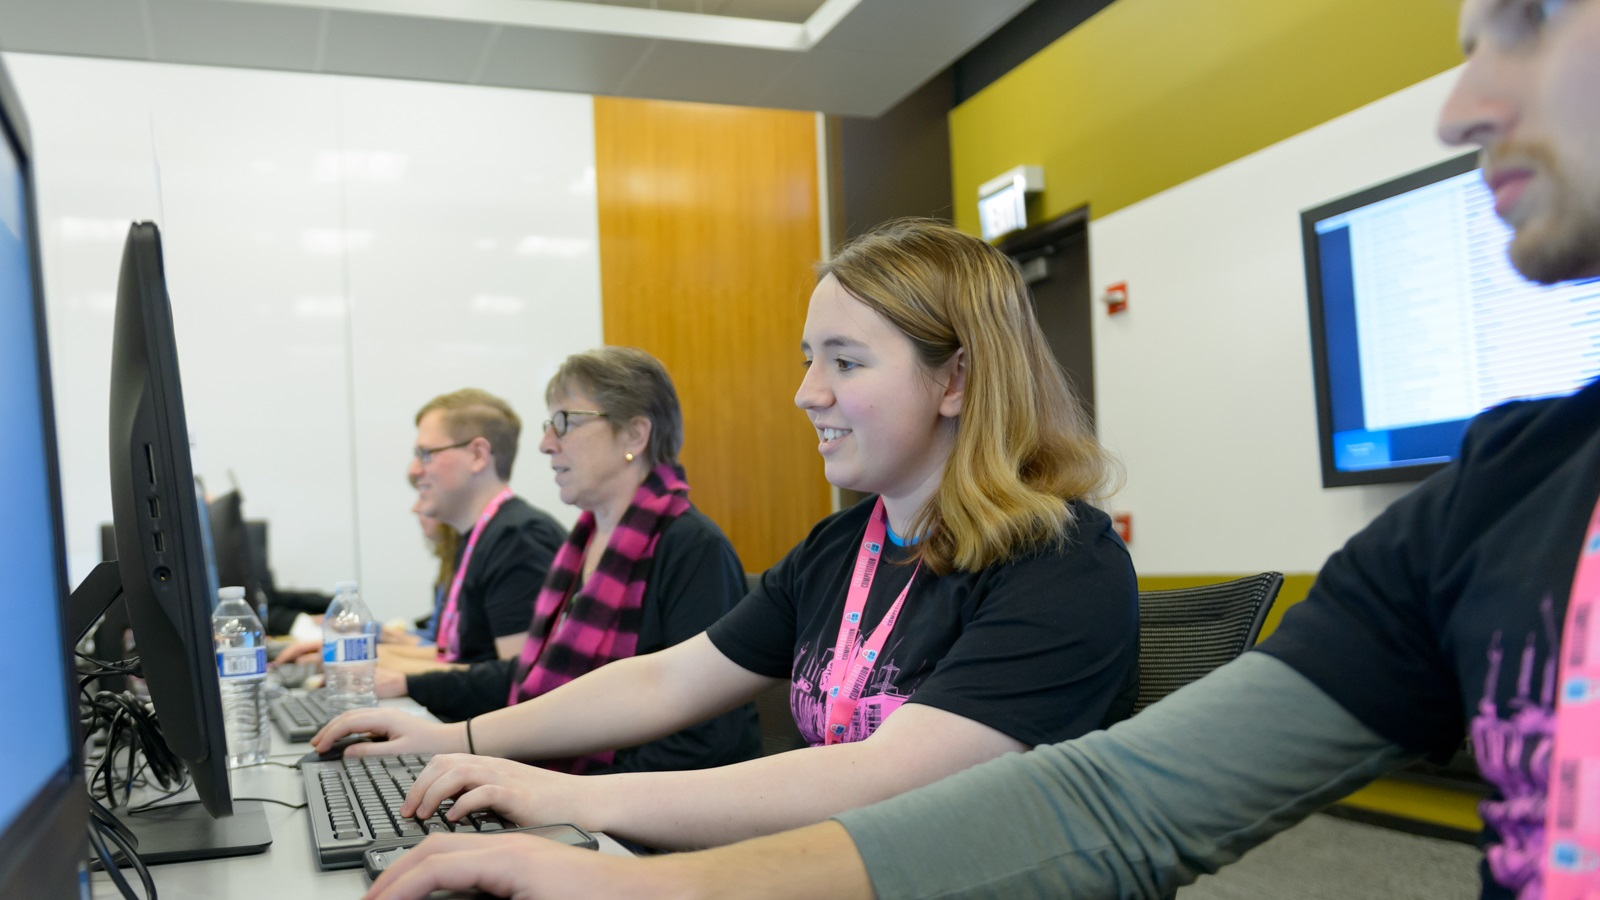 The U.S. Department of Energy will host the first-ever individual CyberForce Competition on November 14. Here, Jocelyn Murray, a Lewis University student, watches the action during the previous contest in late 2019. (Image by Argonne National Laboratory.)